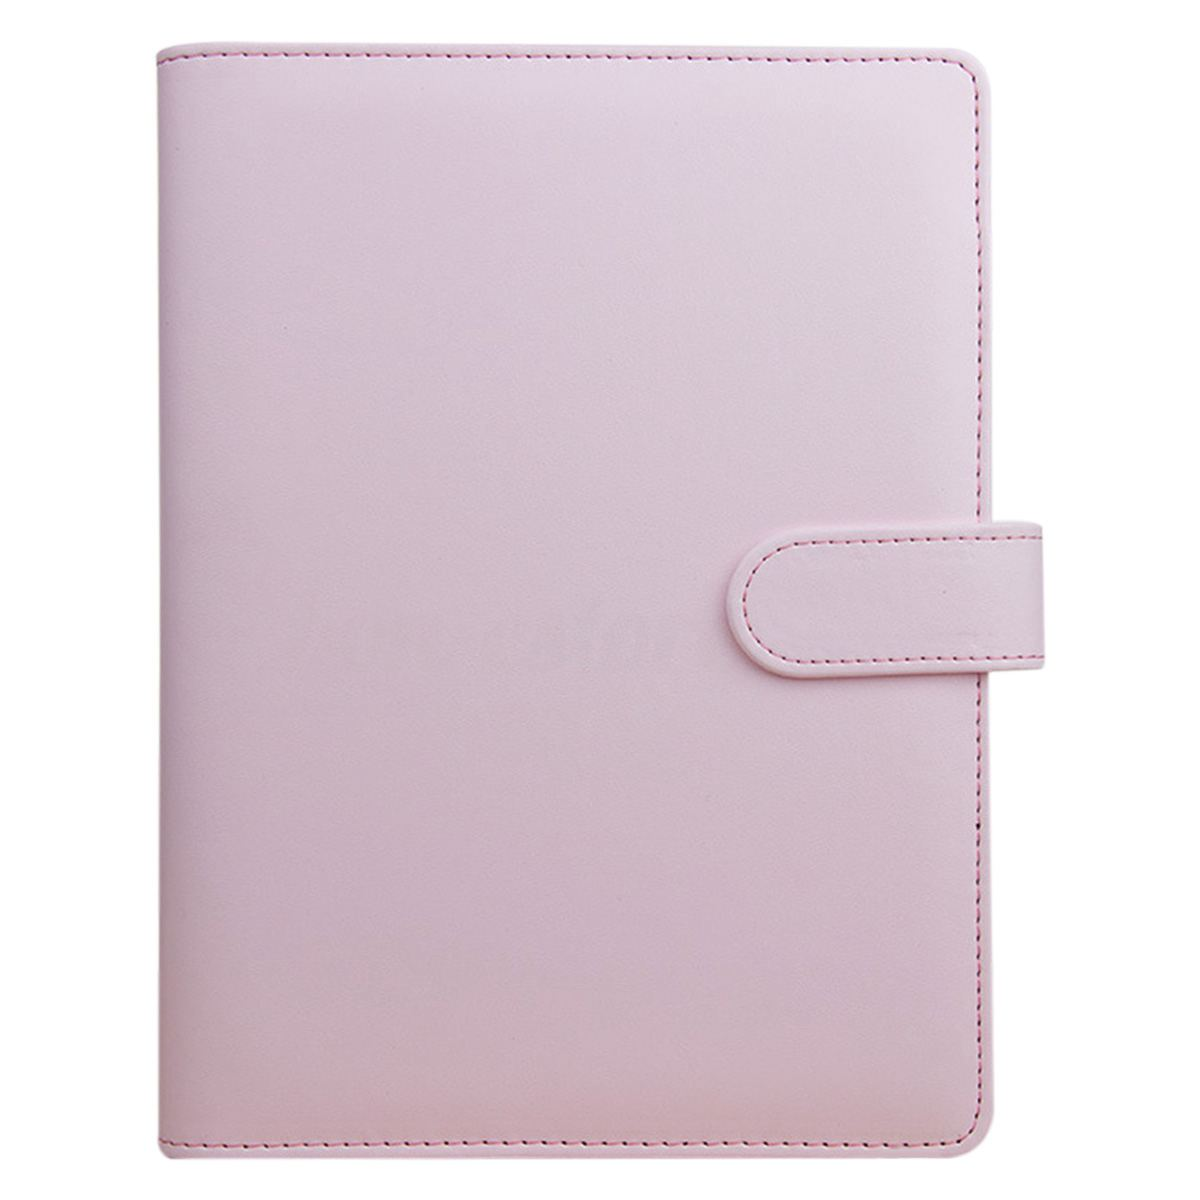 A5 Weekly Monthly Planner Diary Classic Loose-Leaf-Ring-Binder Notebook Cover, PinkA5 Weekly Monthly Planner Diary Classic Loose-Leaf-Ring-Binder Notebook Cover, Pink